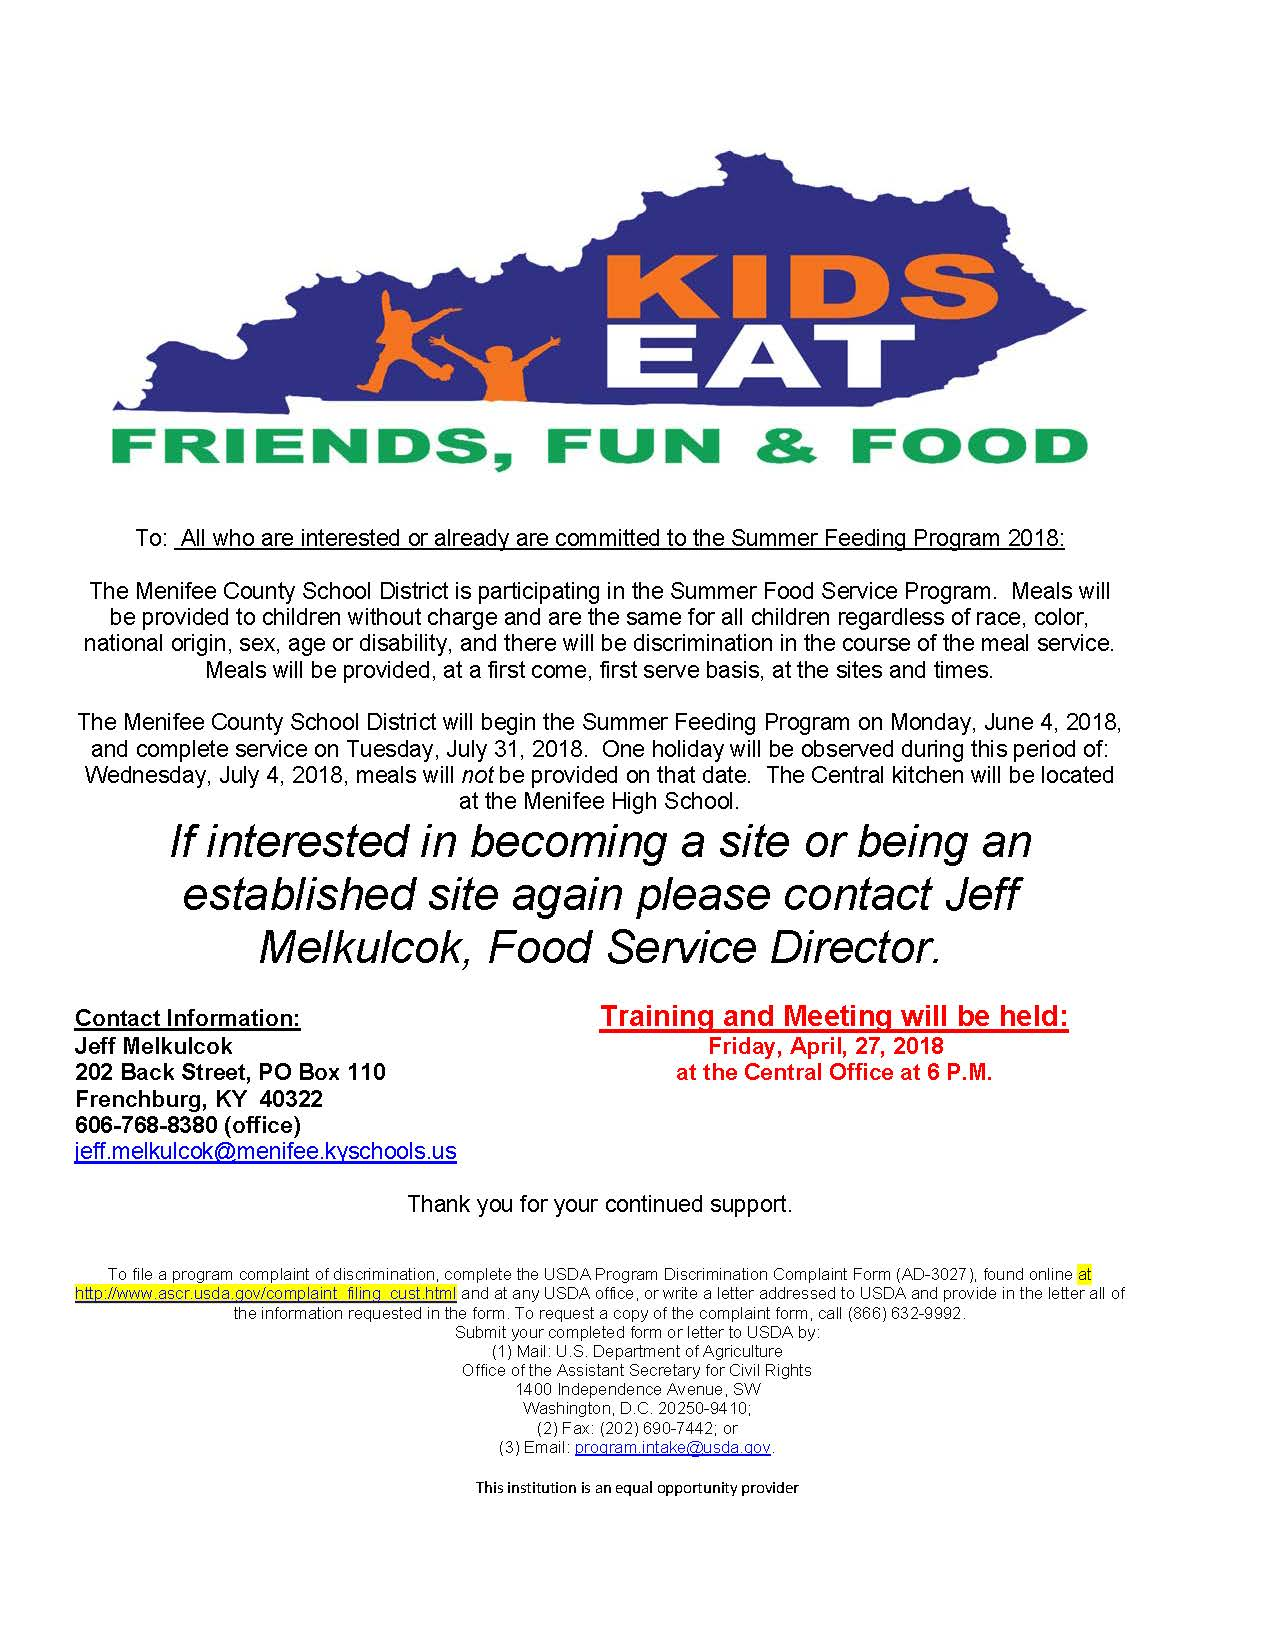 2018 Summer Feeding Program Flyer